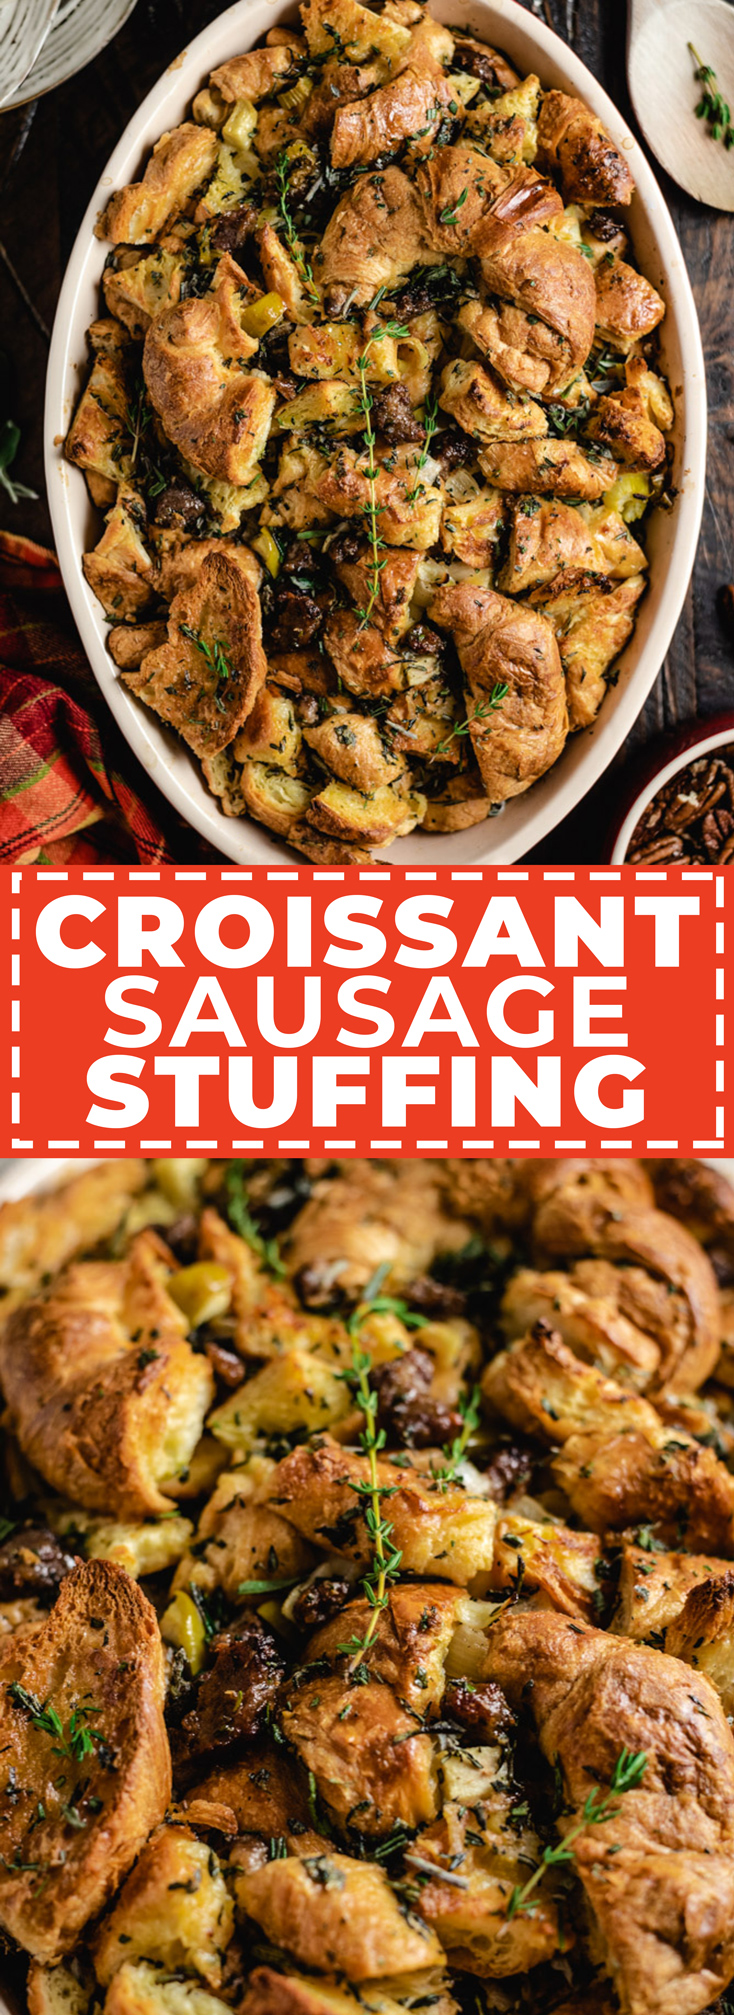 Forget everything you thought you knew about stuffing. This Croissant Sausage Stuffing-- with its ultra-buttery, herbaceous flavors and flaky, fluffy layers-- is changing the Thanksgiving game. | hostthetoast.com